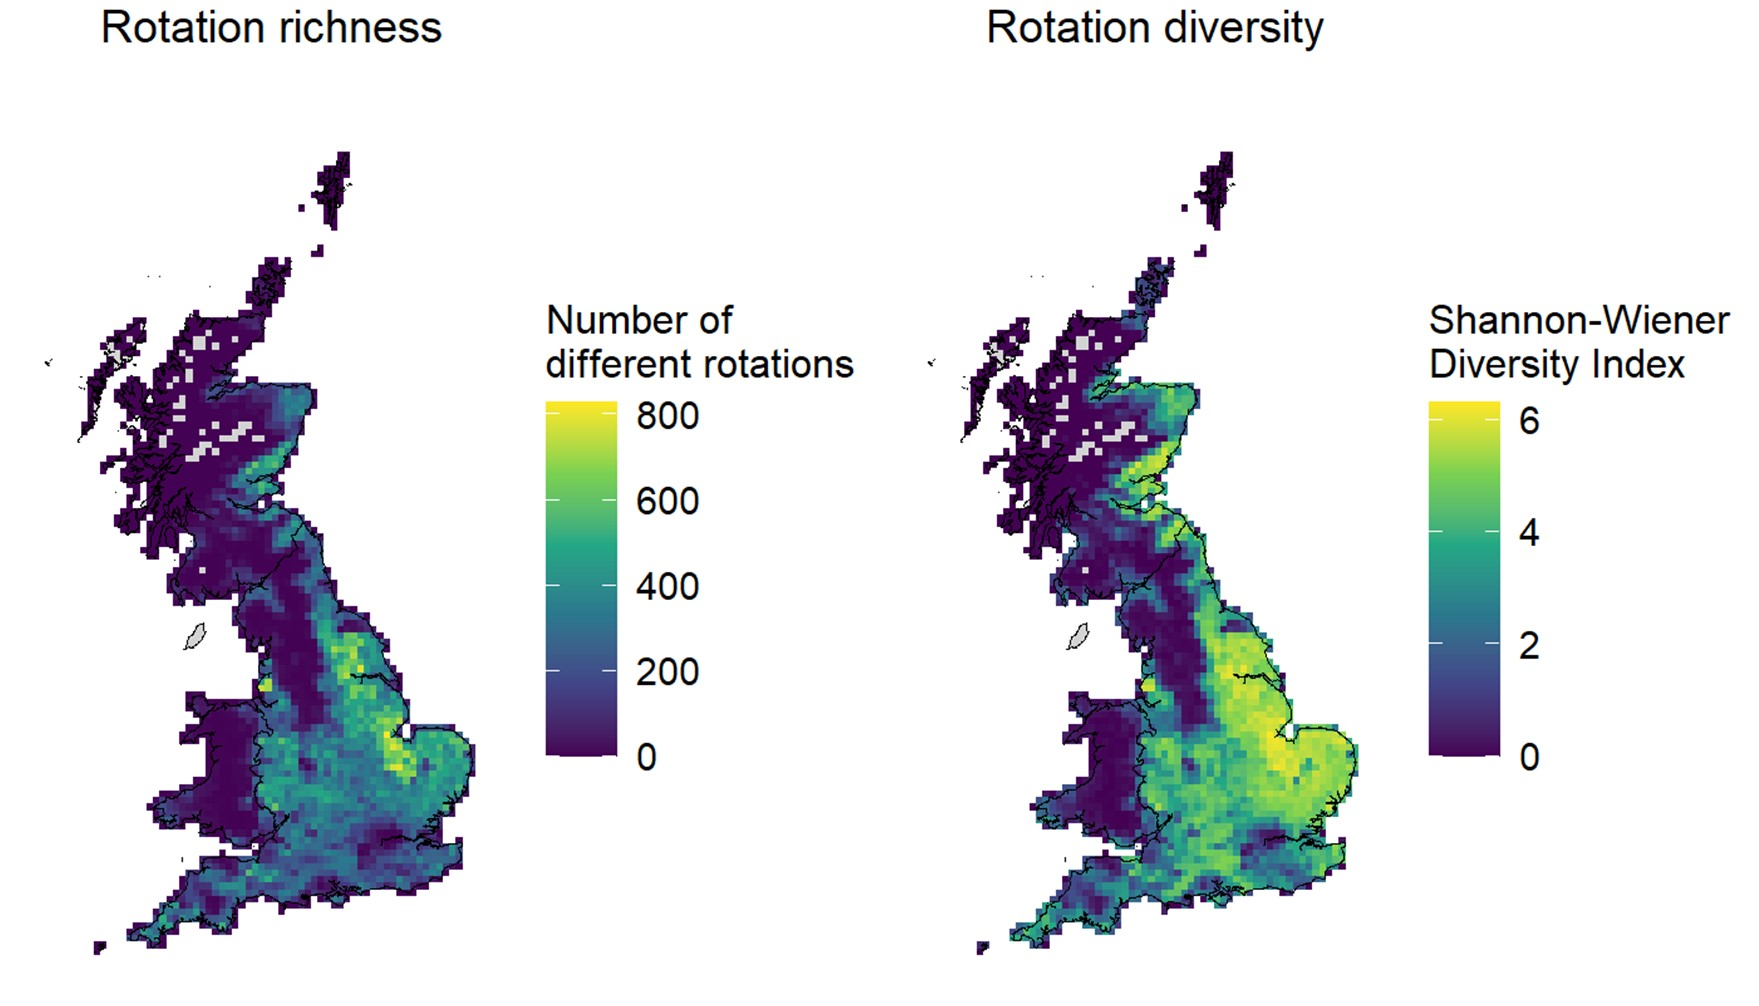 Maps showing crop rotation richness and diversity